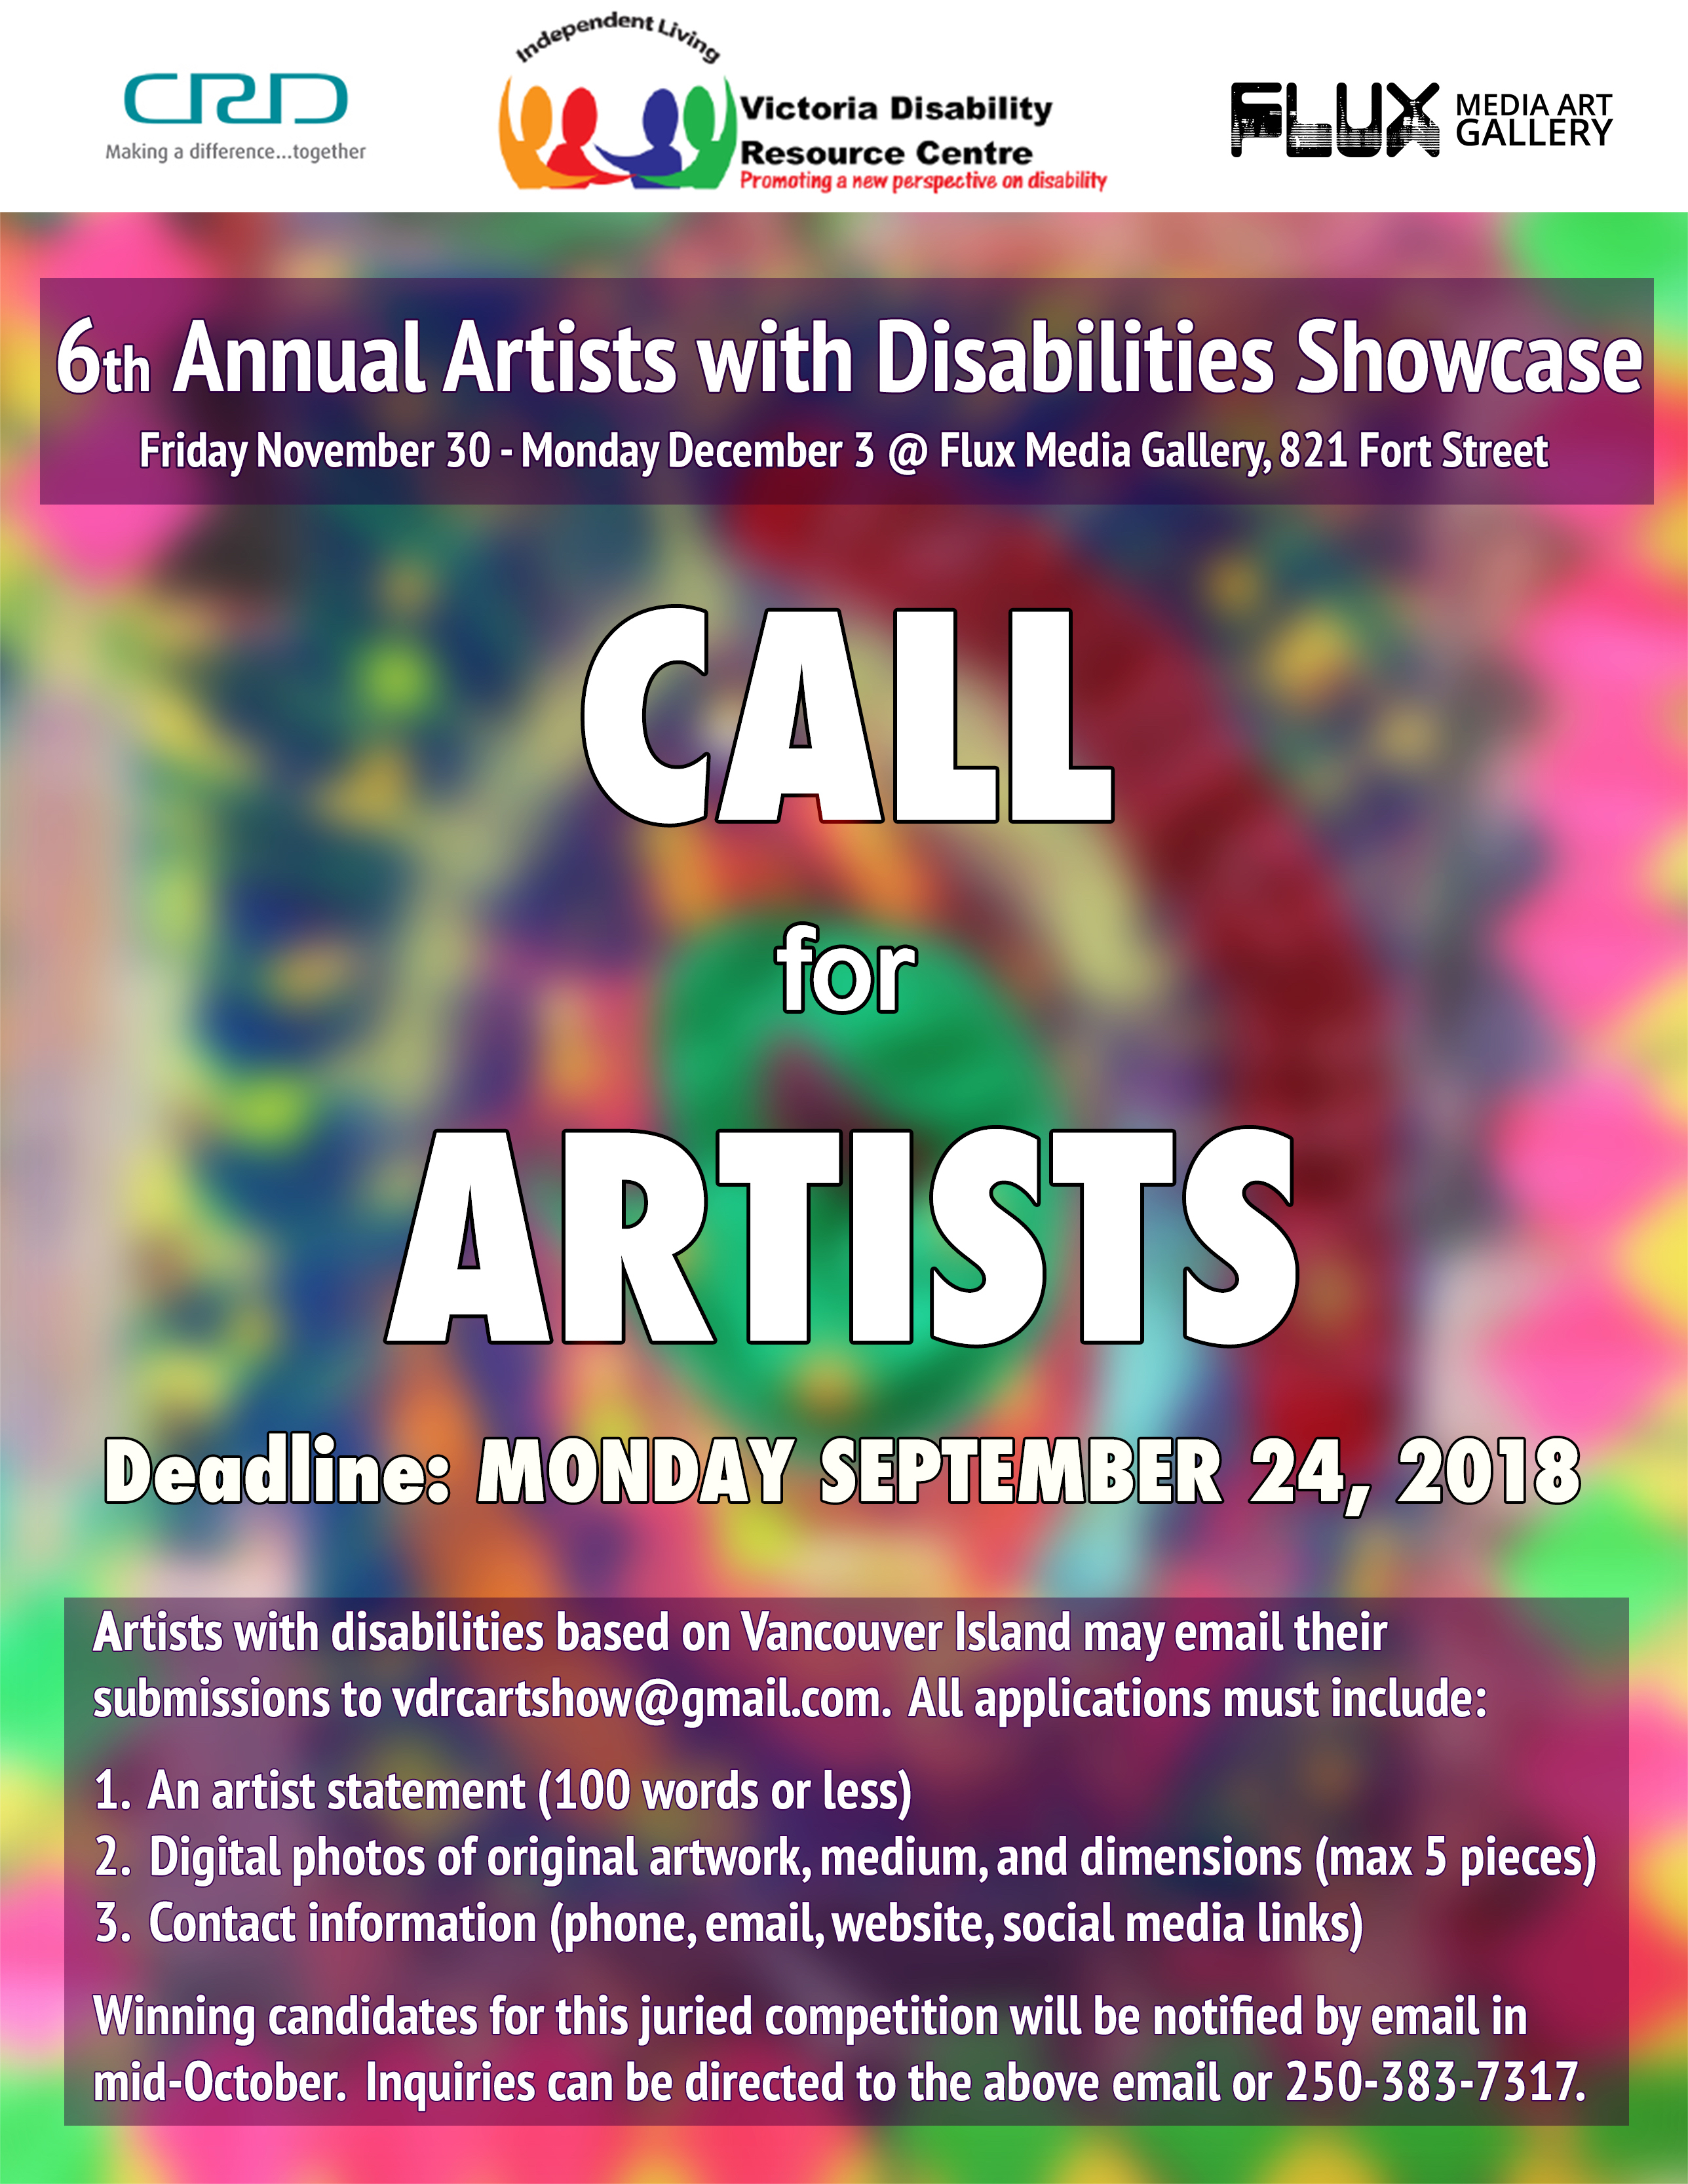 """Poster calling artists to be in the 6th Annual Artists with Disabilities Show. Text reads as follows: """"6th Annual Artists with Disabilities Showcase. Friday November 30 to Monday December 3 at Flux Media Gallery, 821 Fort Street. CALL FOR ARTISTS Deadline: Monday September 24, 2018 Artists with disabilities based on Vancouver Island may email their submissions to vdrcartshow@gmail.com. All applications must include: 1. An artist statement (100 words or less) 2. Digital photos of original artwork, medium, and dimensions (max 5 pieces) 3. Contact information (phone, email, website, social media links) Winning candidates for this juried competition will be notified by email in mid-October. Inquiries can be directed to the above email or 250-383-7317. Logos: CRD - Making a difference...together, Victoria Disability Resource Centre - Independent Living, Promoting a new perspective on disability, Flux Media Art Gallery."""""""